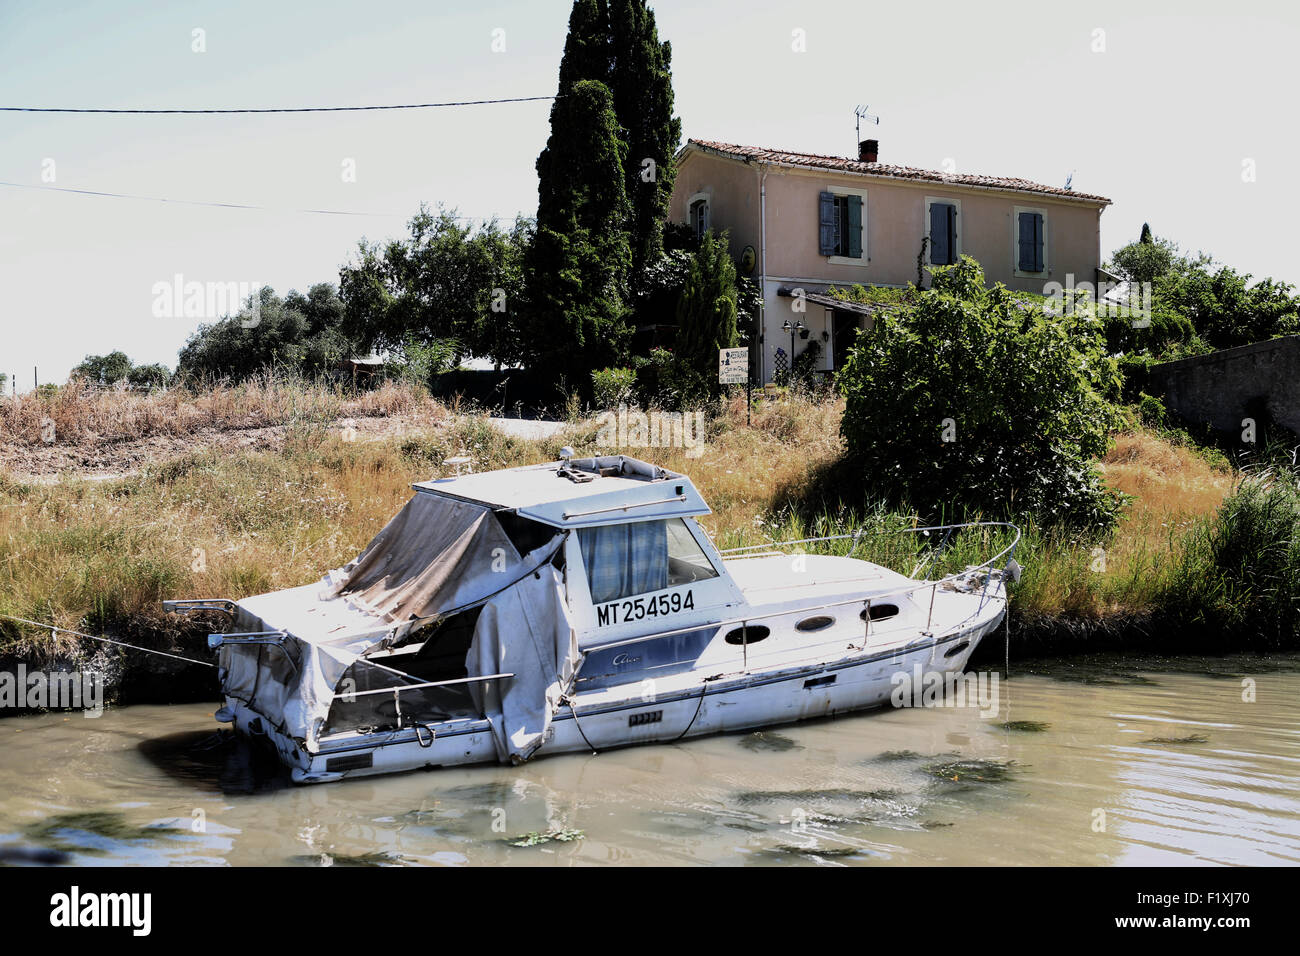 monotone style cruser boat loooking sad and old on a canal near Narbonne in south west france - Stock Image